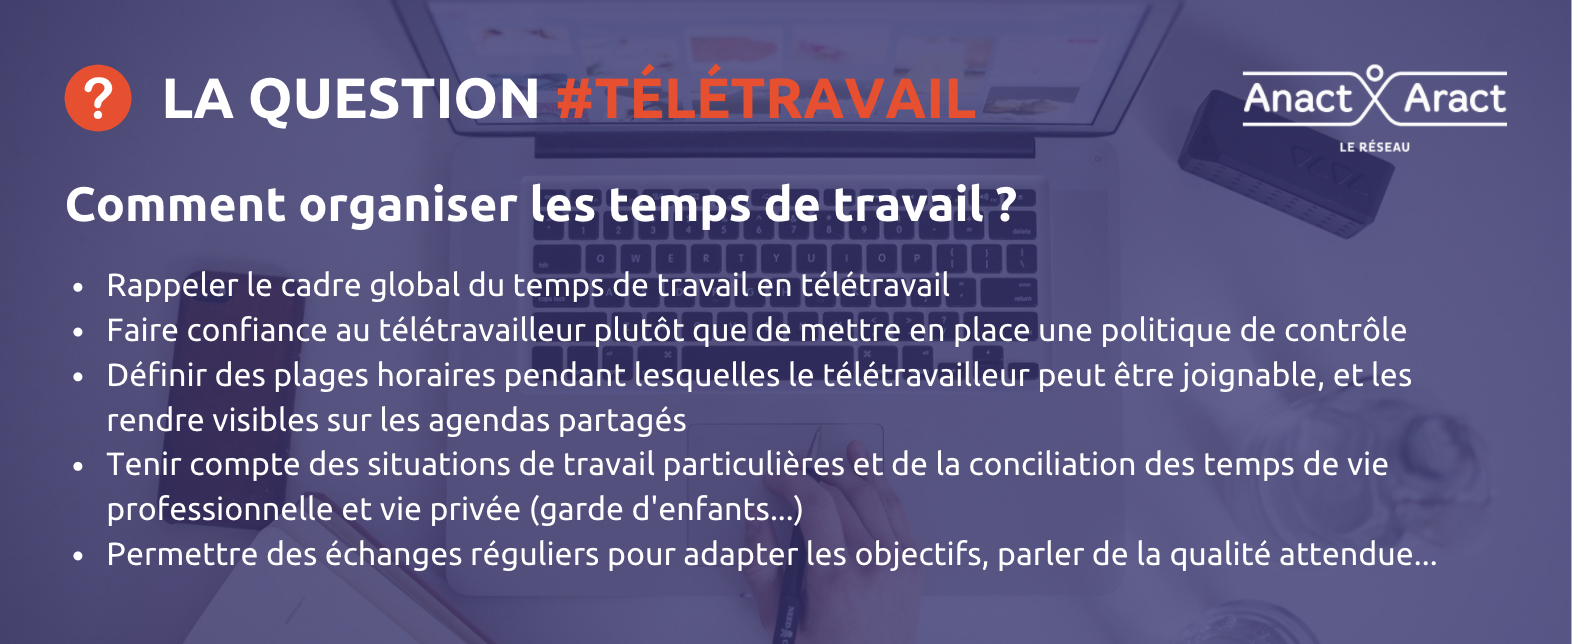 question teletravail 5